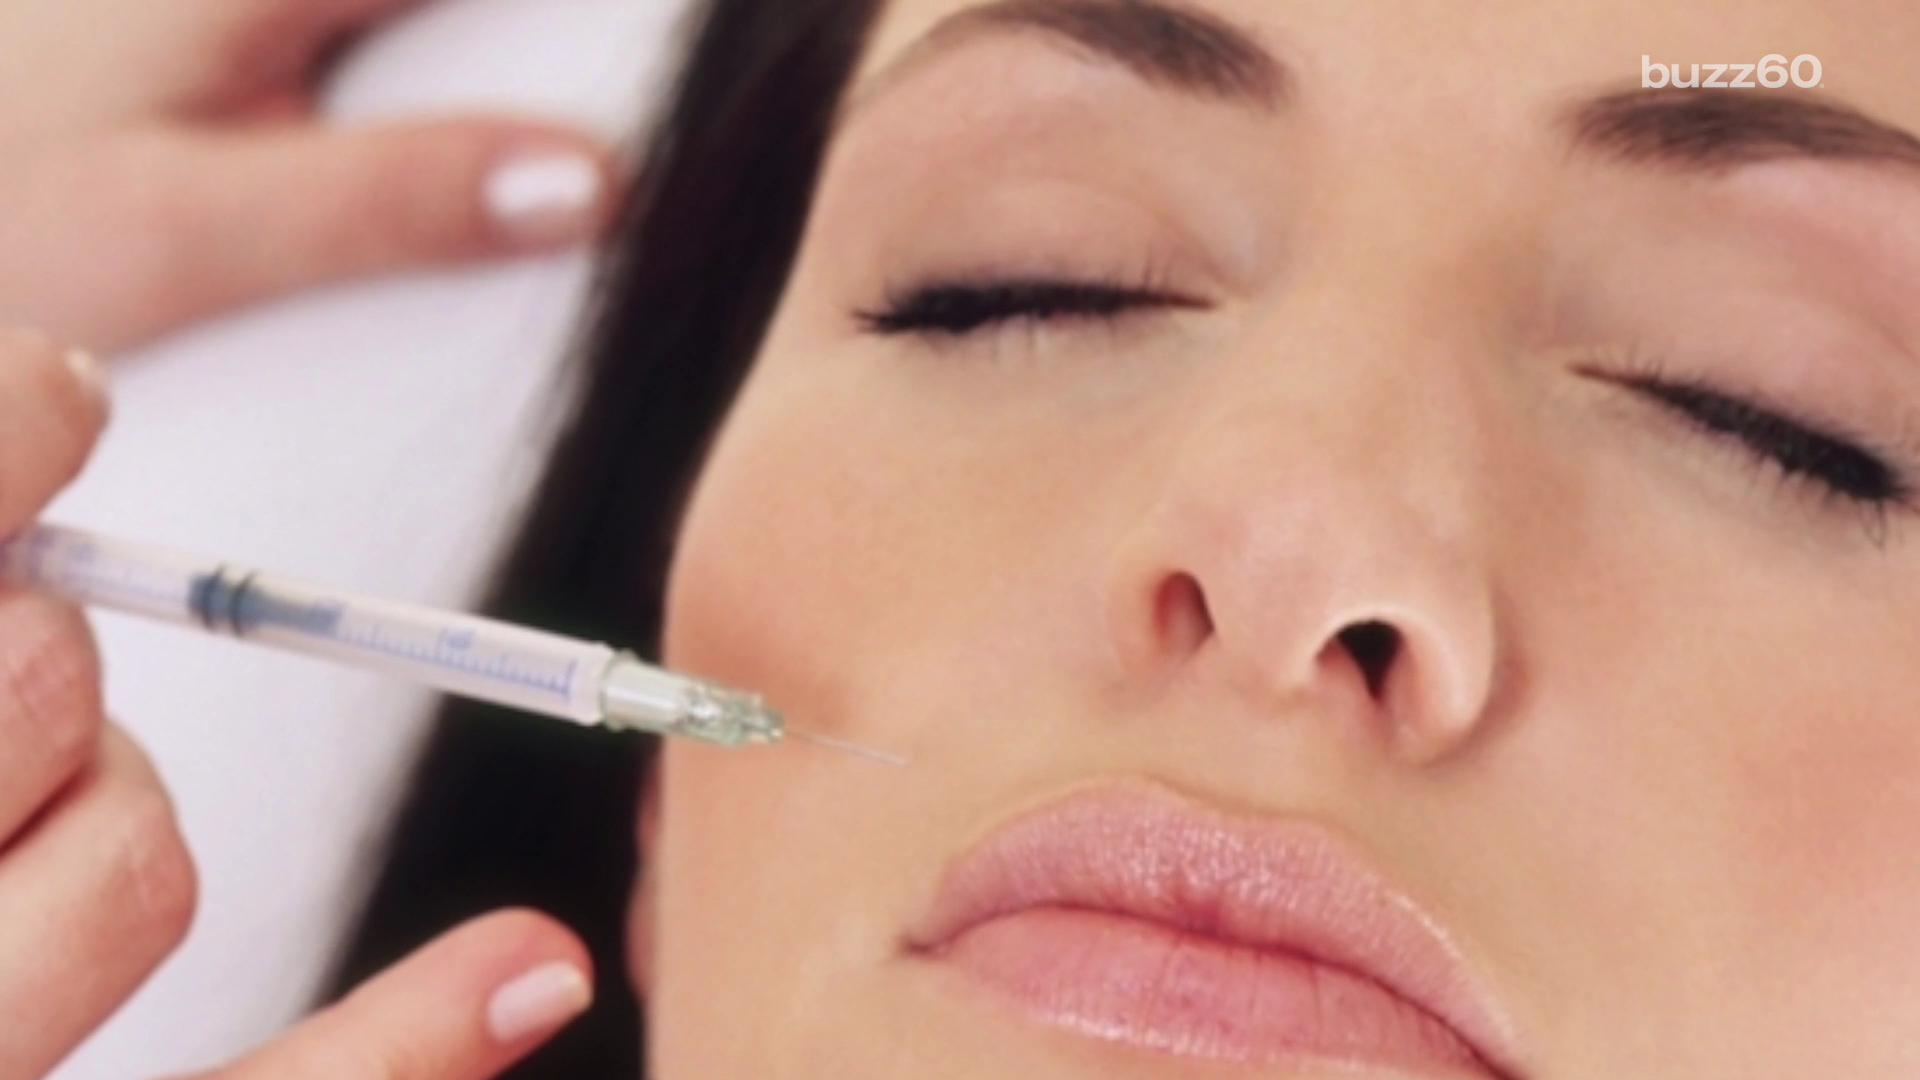 Botox could help ease your migraine